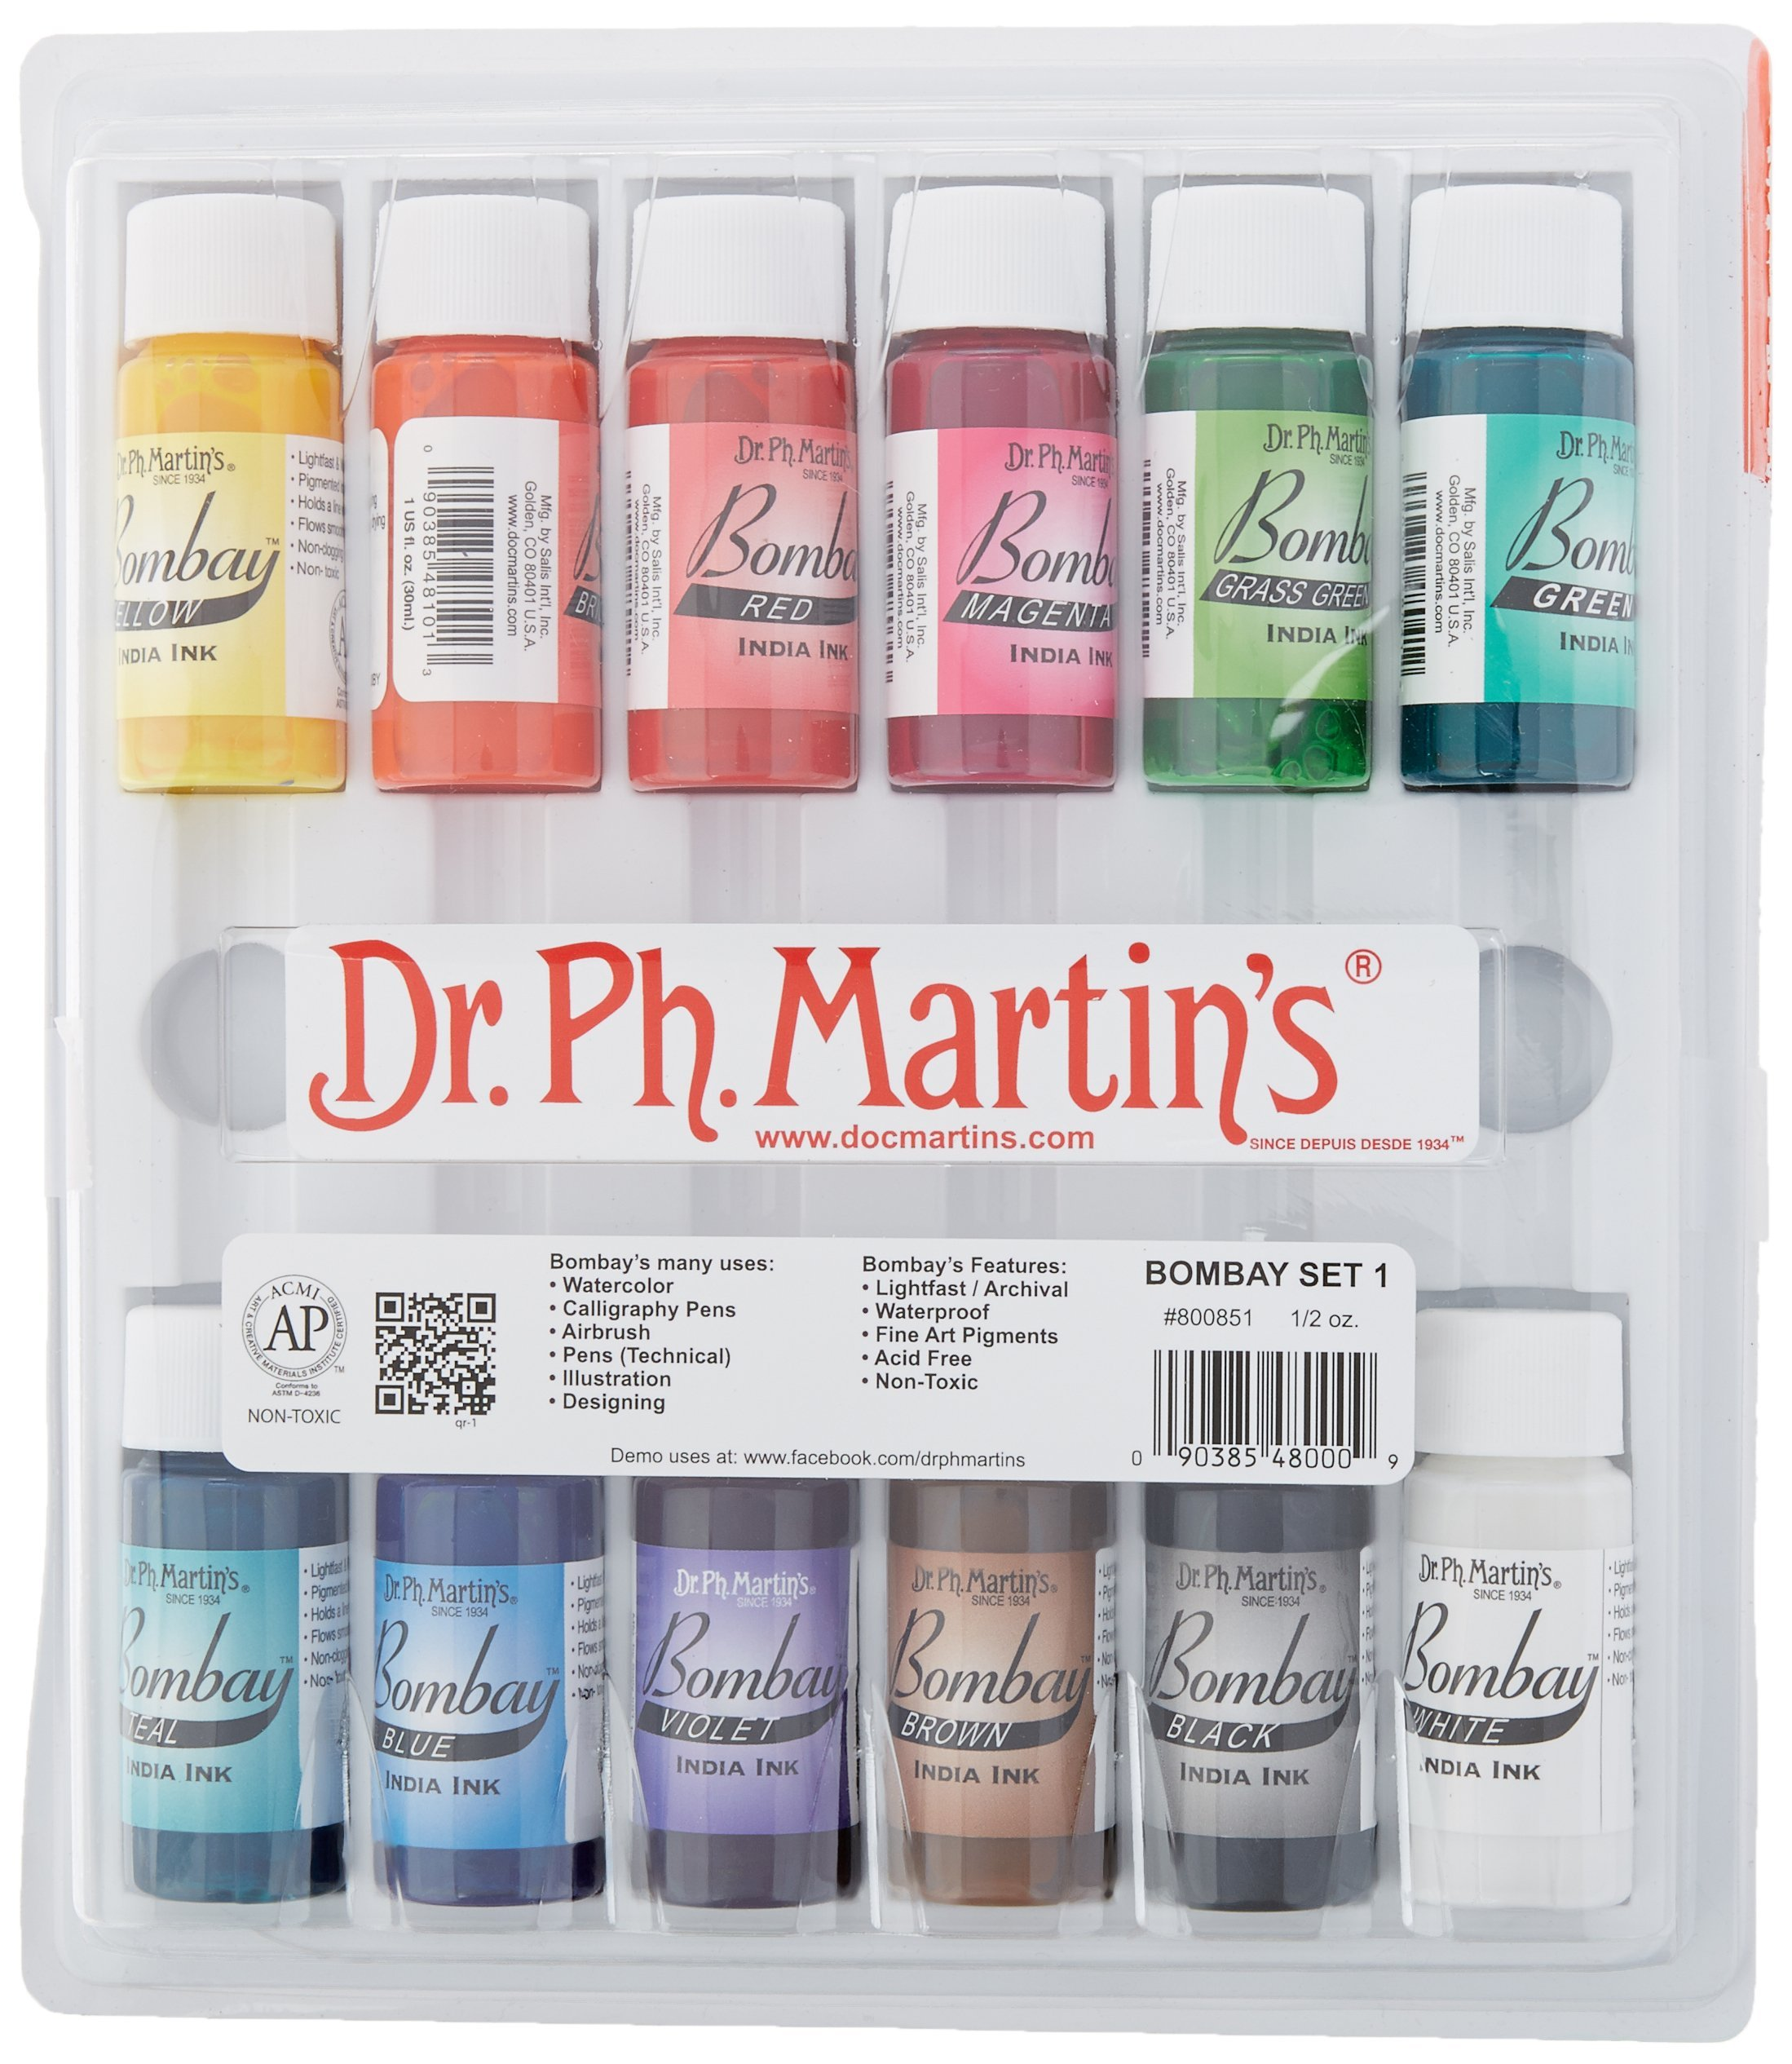 Dr. Ph. Martin's Bombay India Ink (Set 1) Ink Set, 0.5 oz, Set 1 Colors, 1 Set of 12 Bottles by Dr. Ph. Martin's